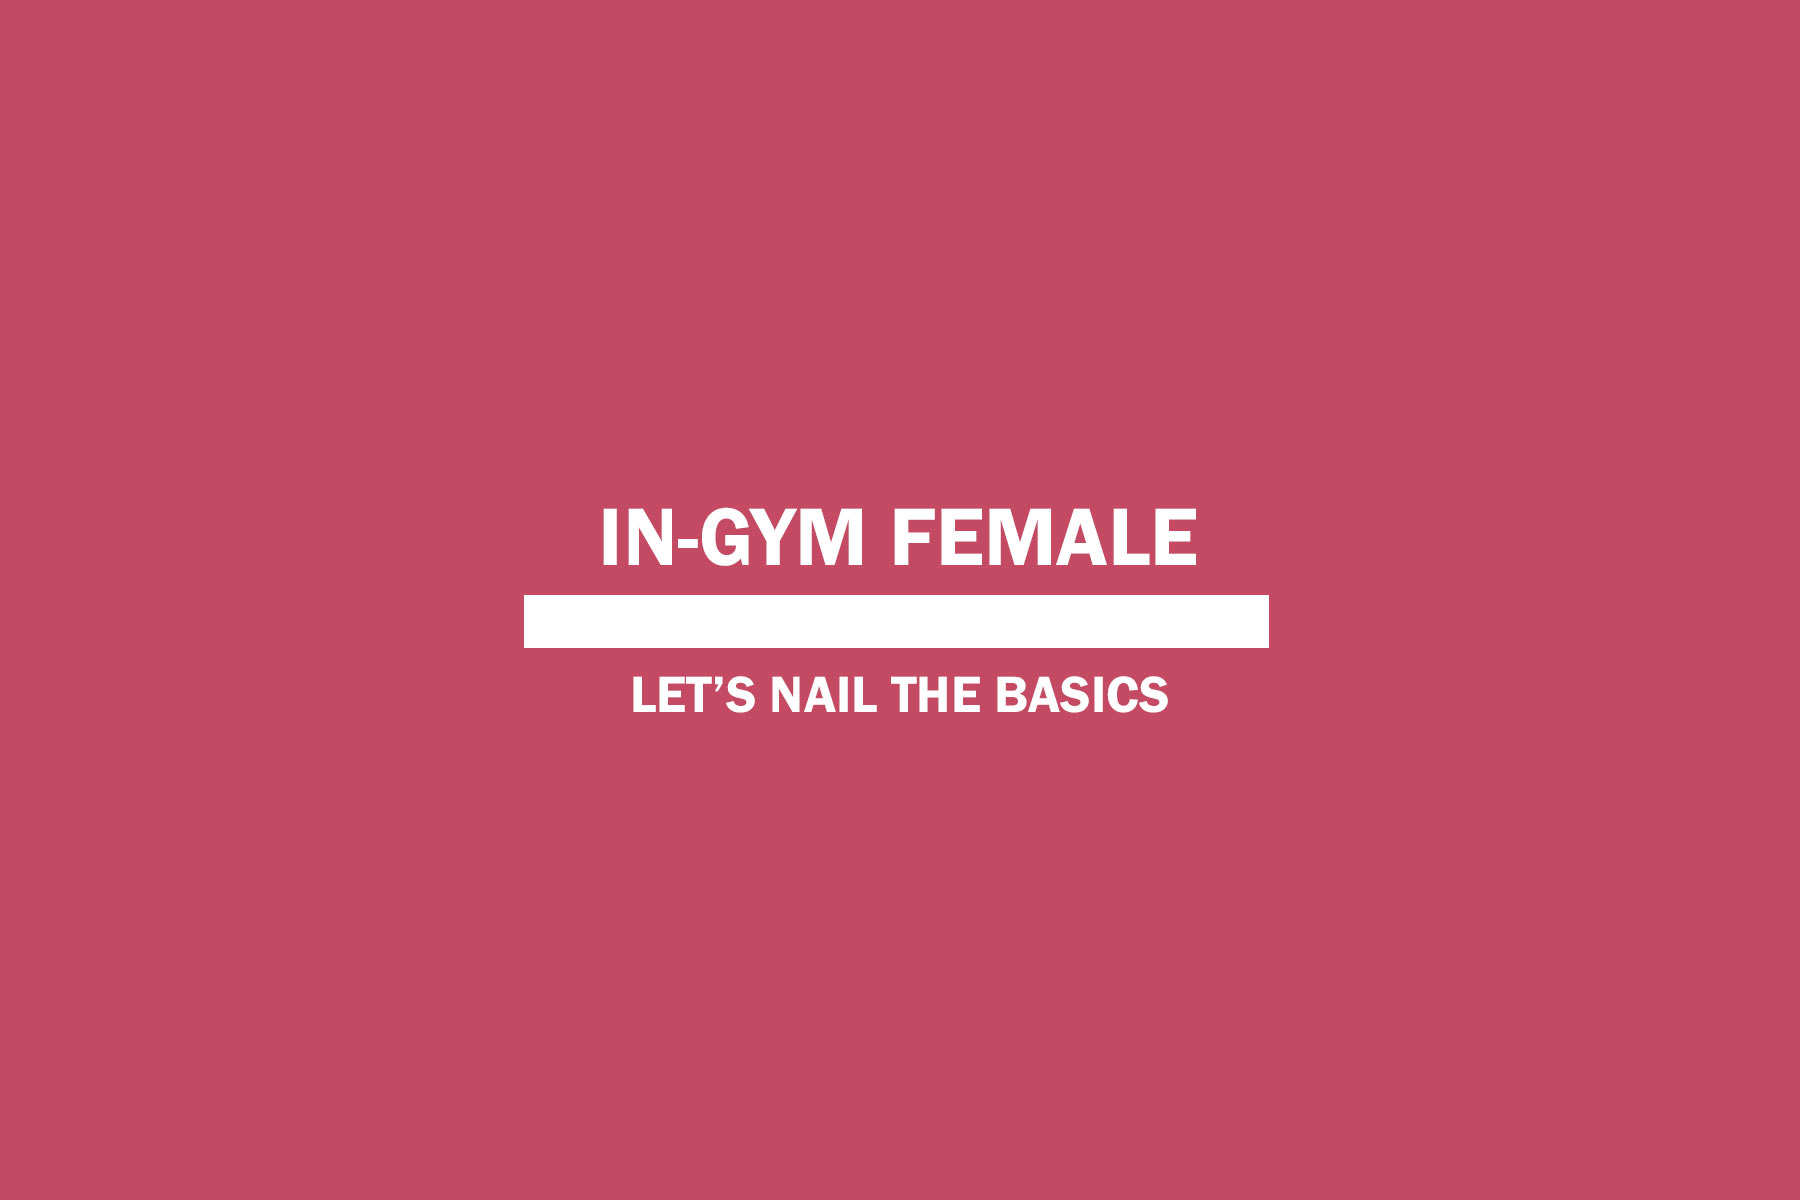 In-gym Female 13th of May to 3rd of June